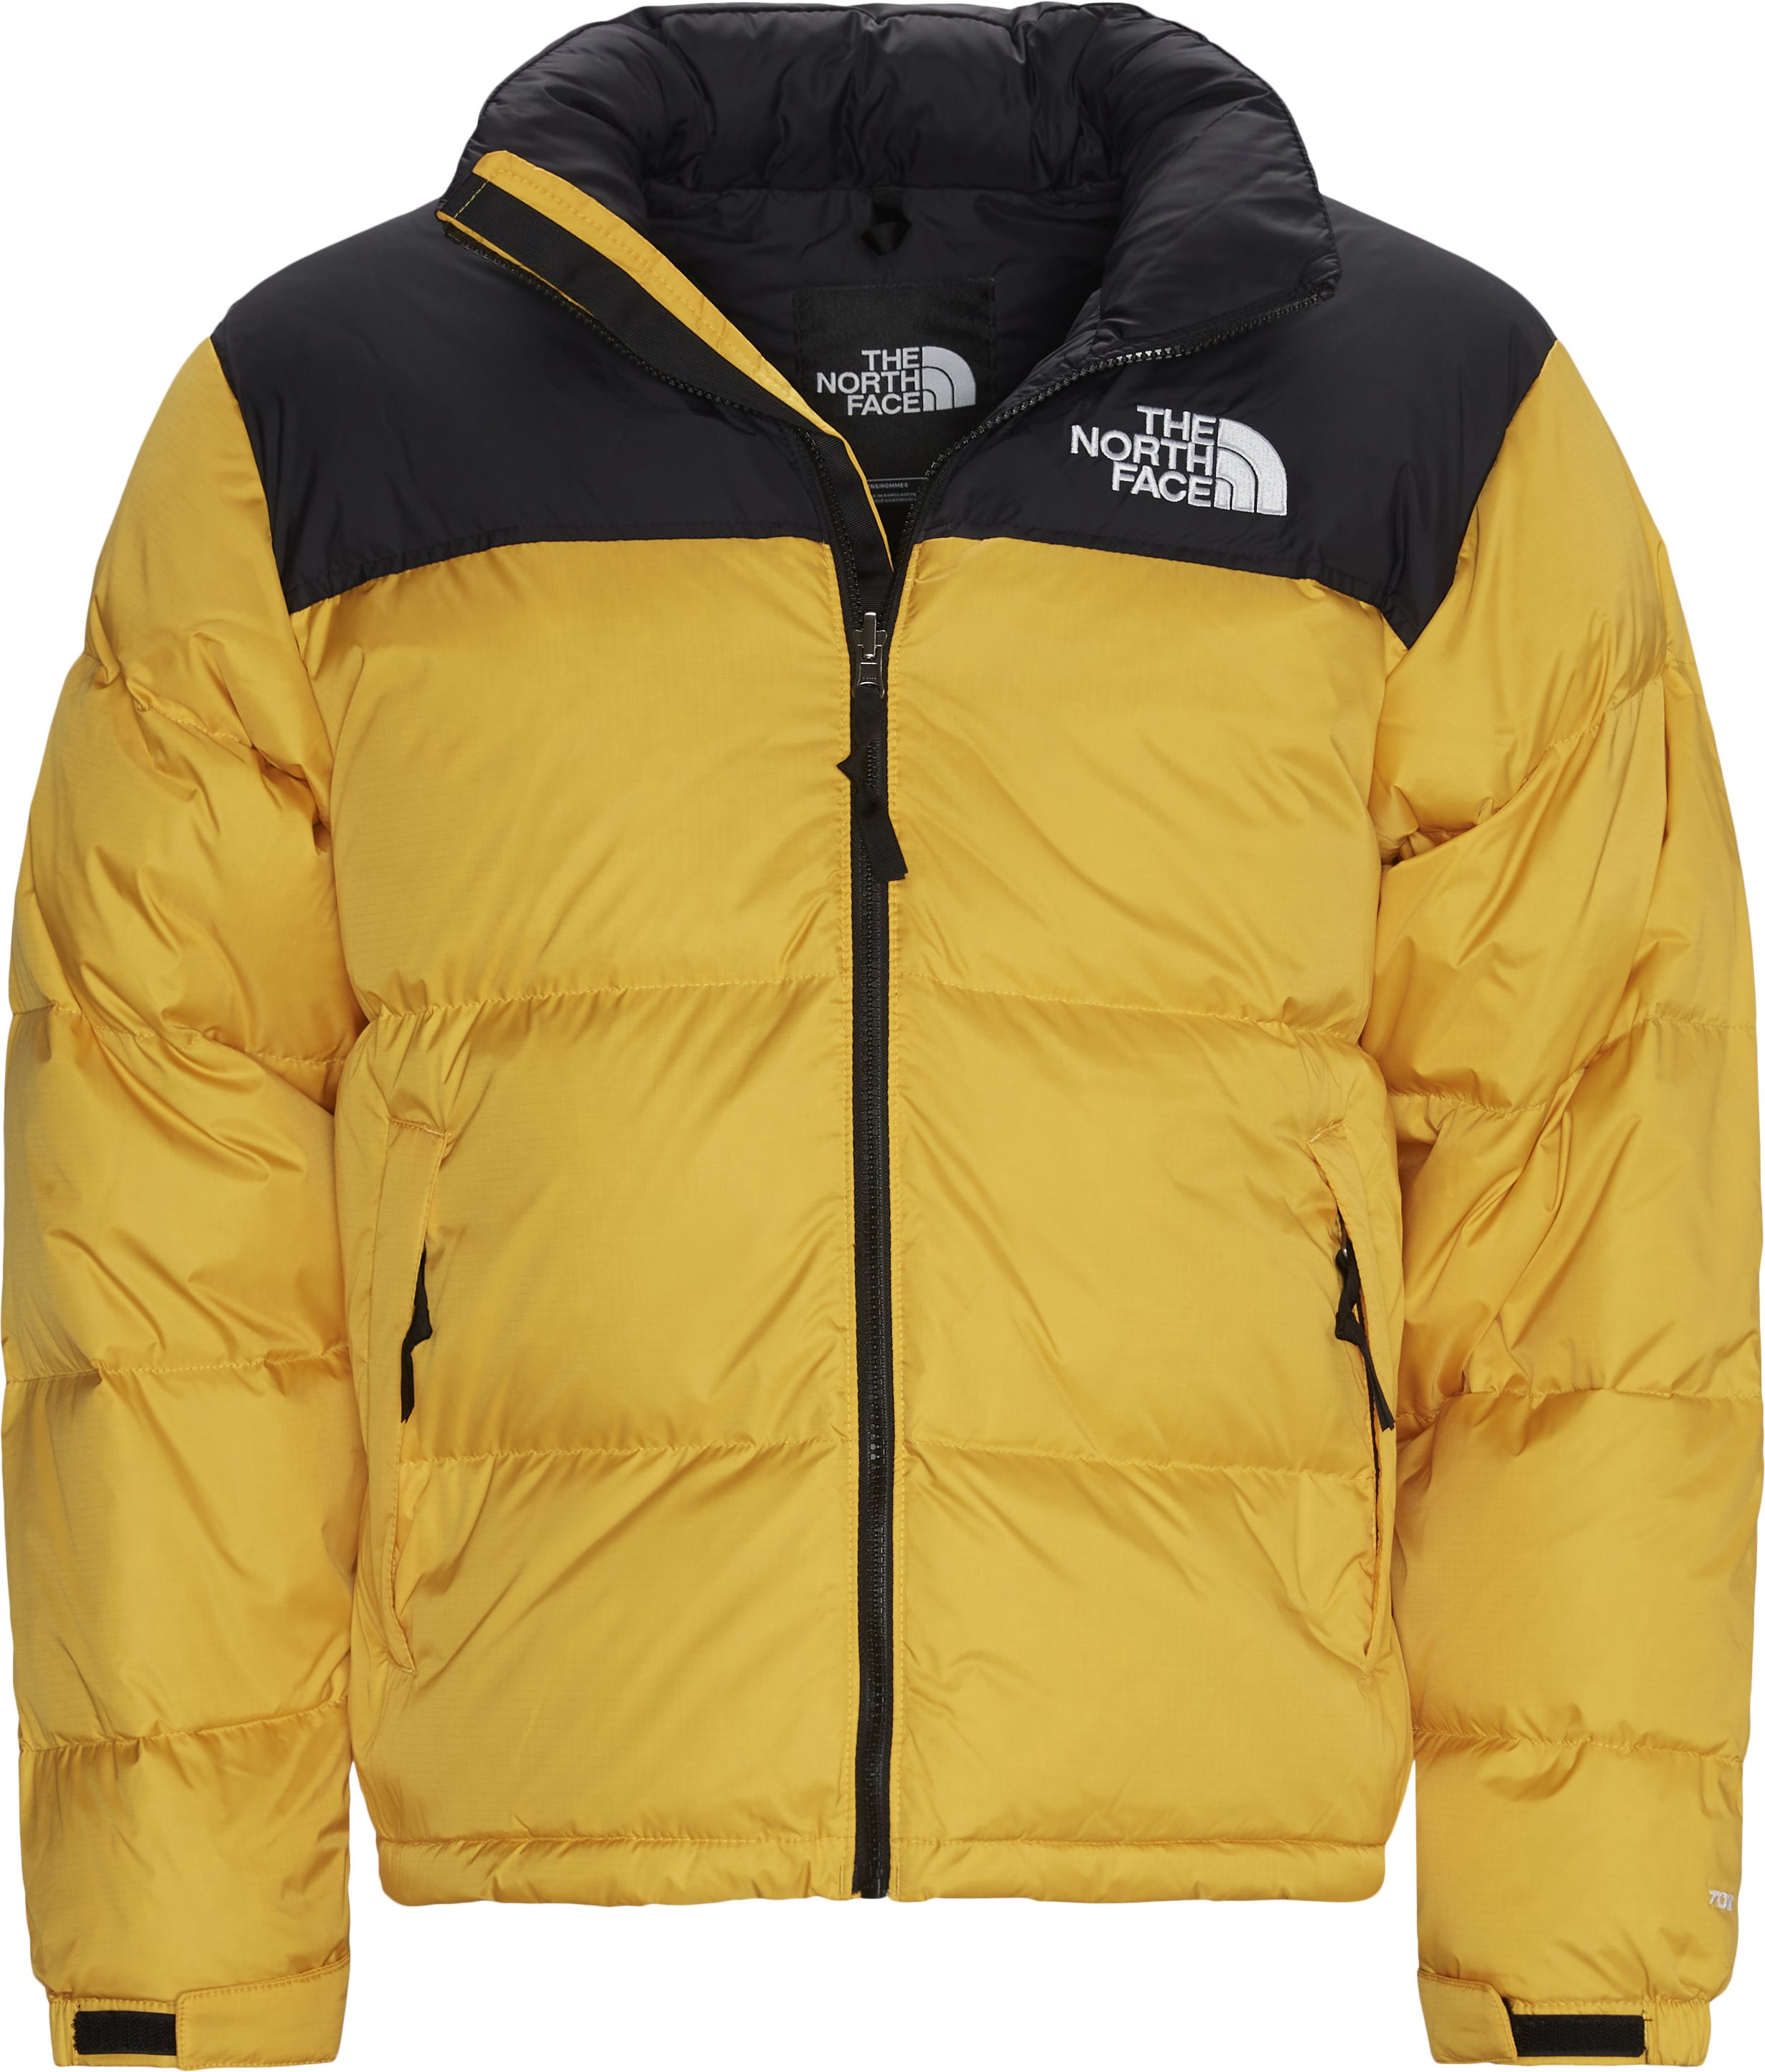 Nuptse Jacket - Jackets - Regular - Yellow